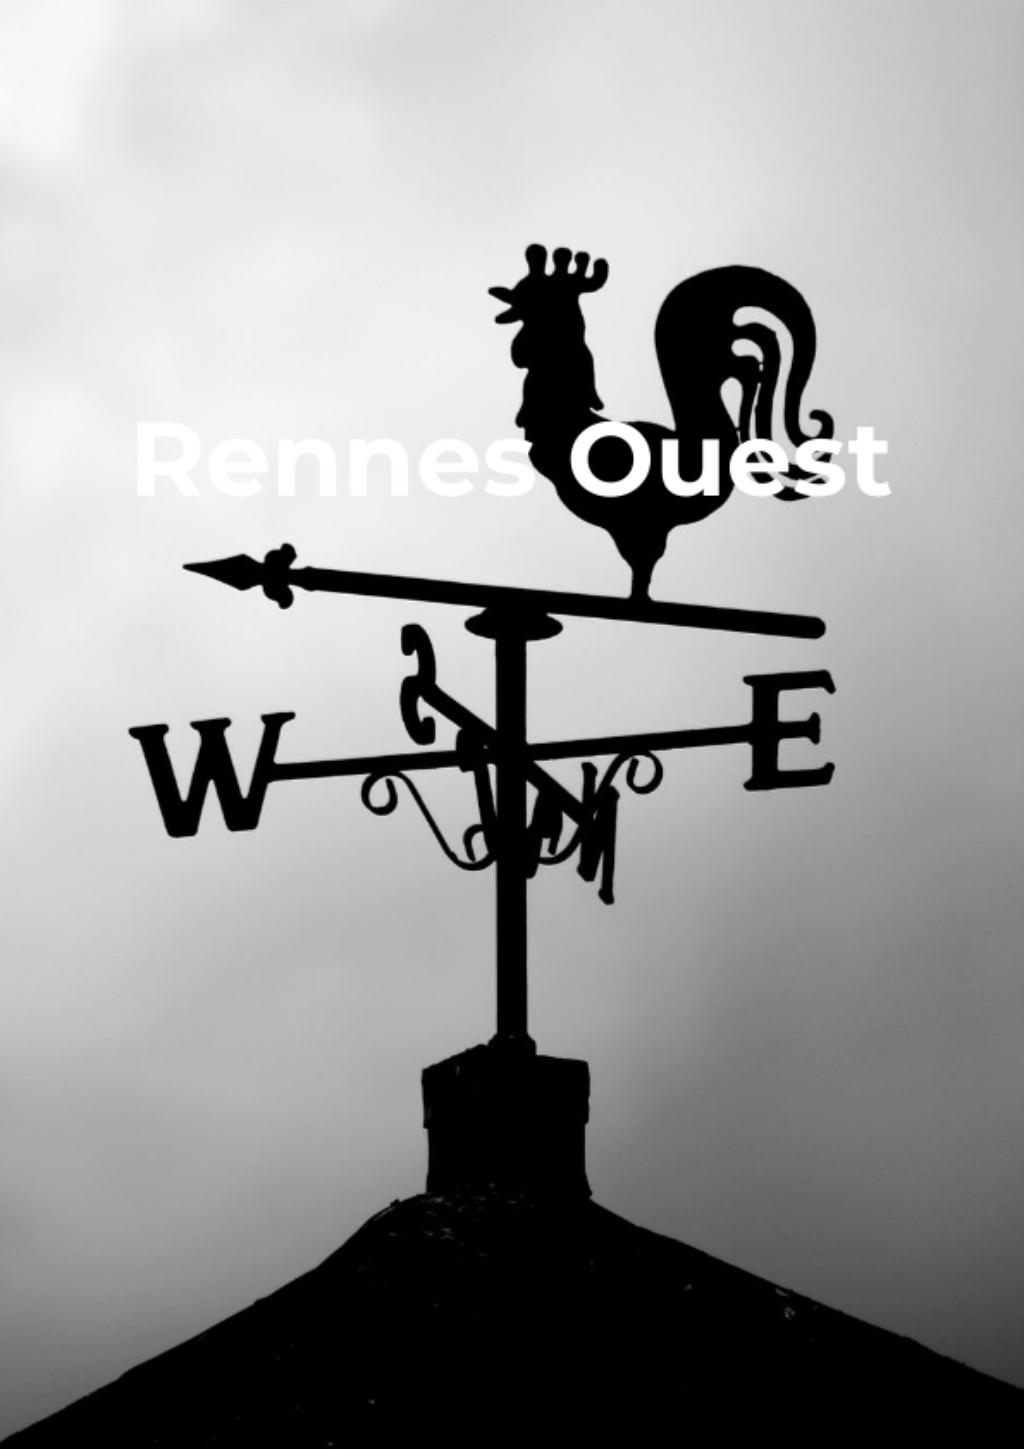 kiosques rennes ouest